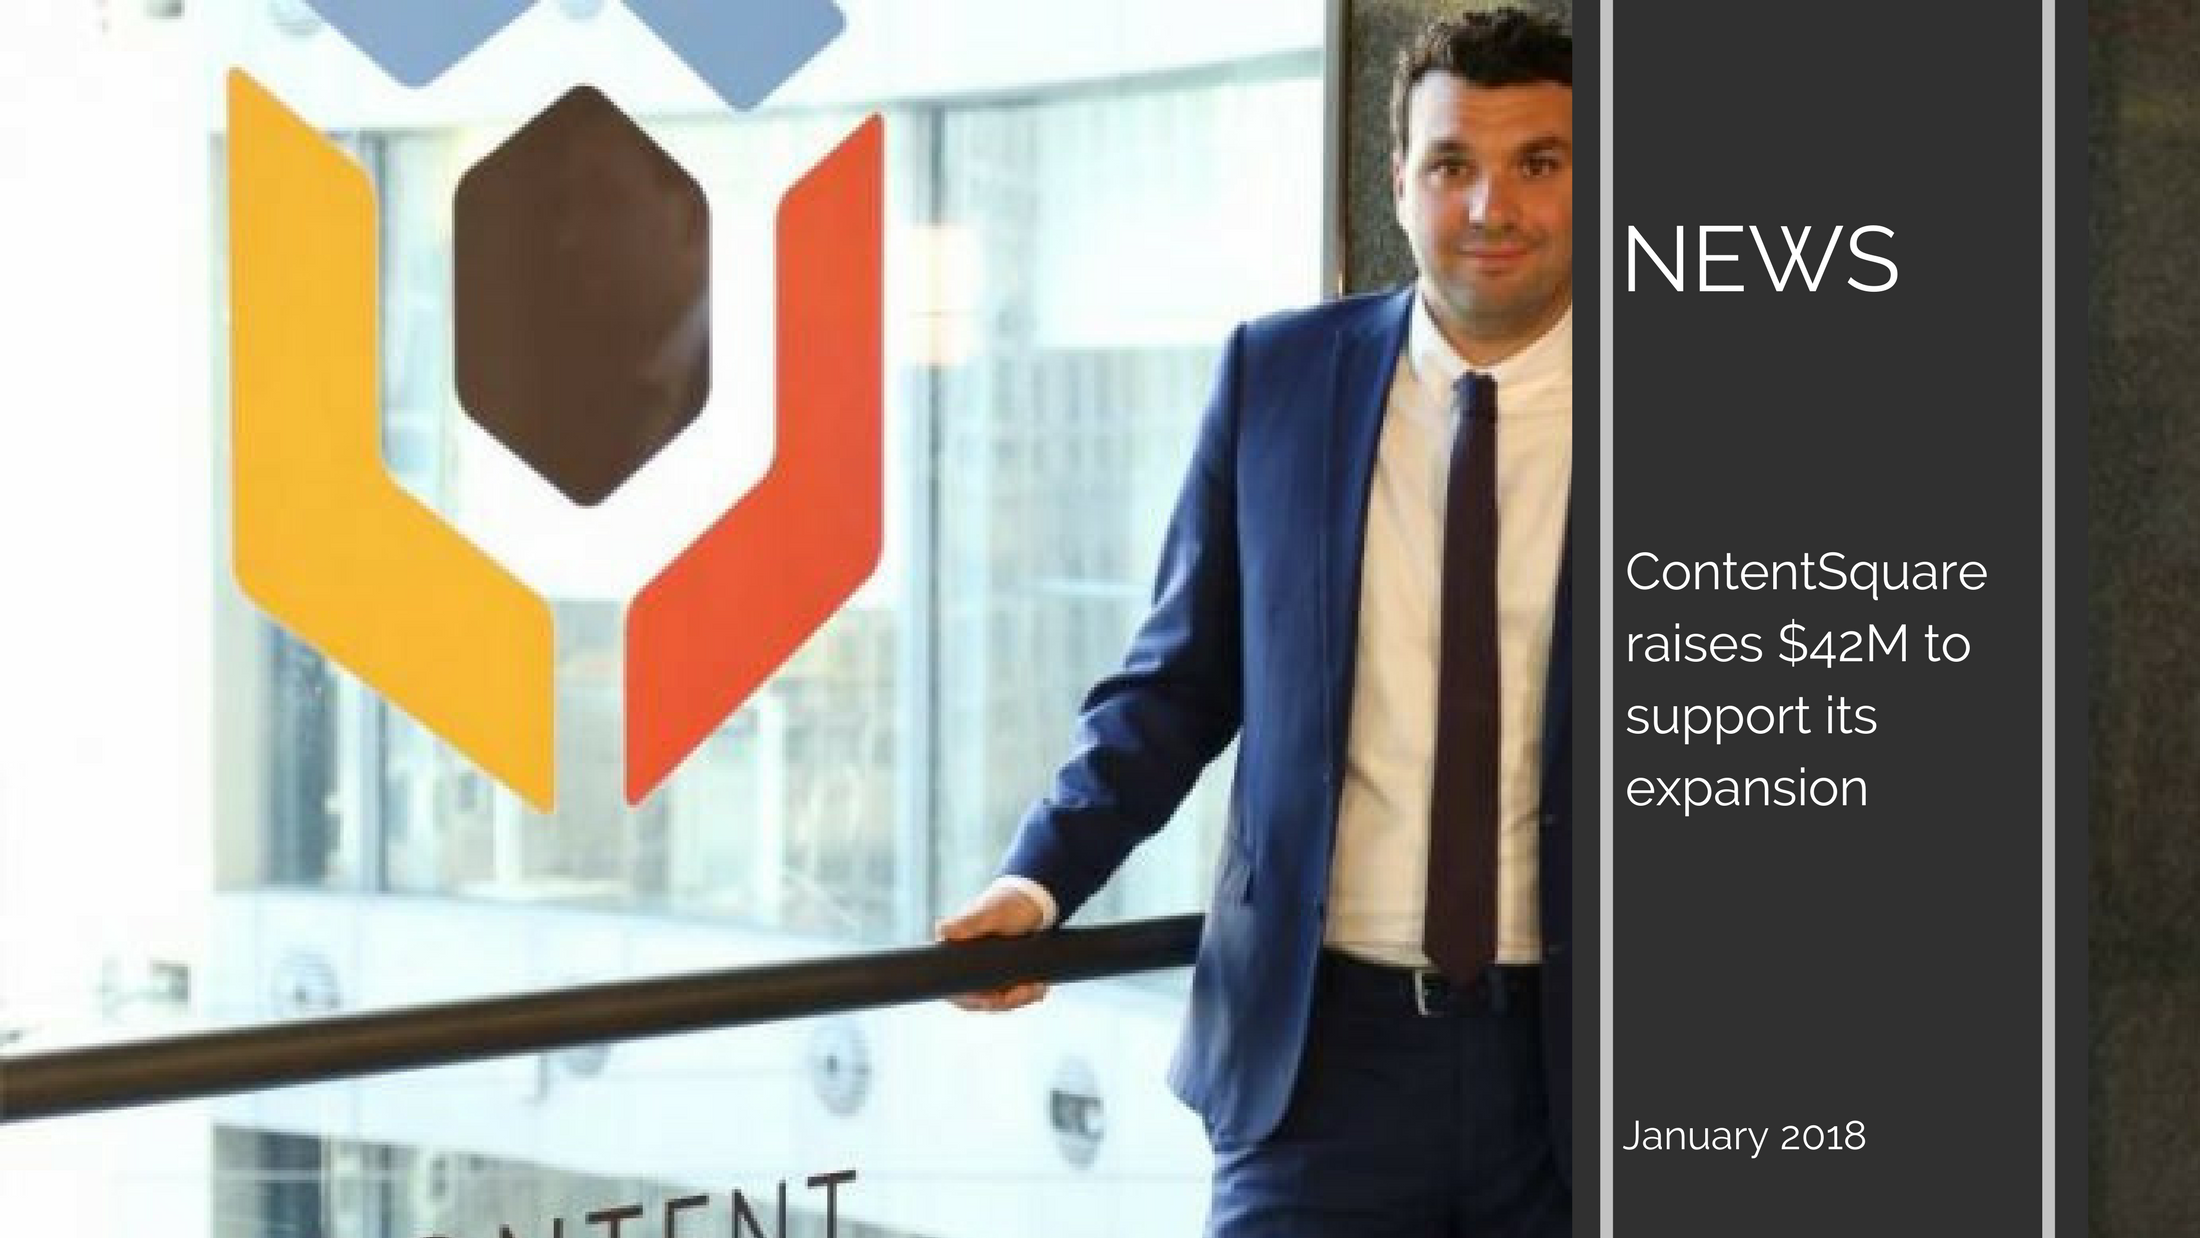 Trends News 22 - ContentSquare raises $42M to support its expansion